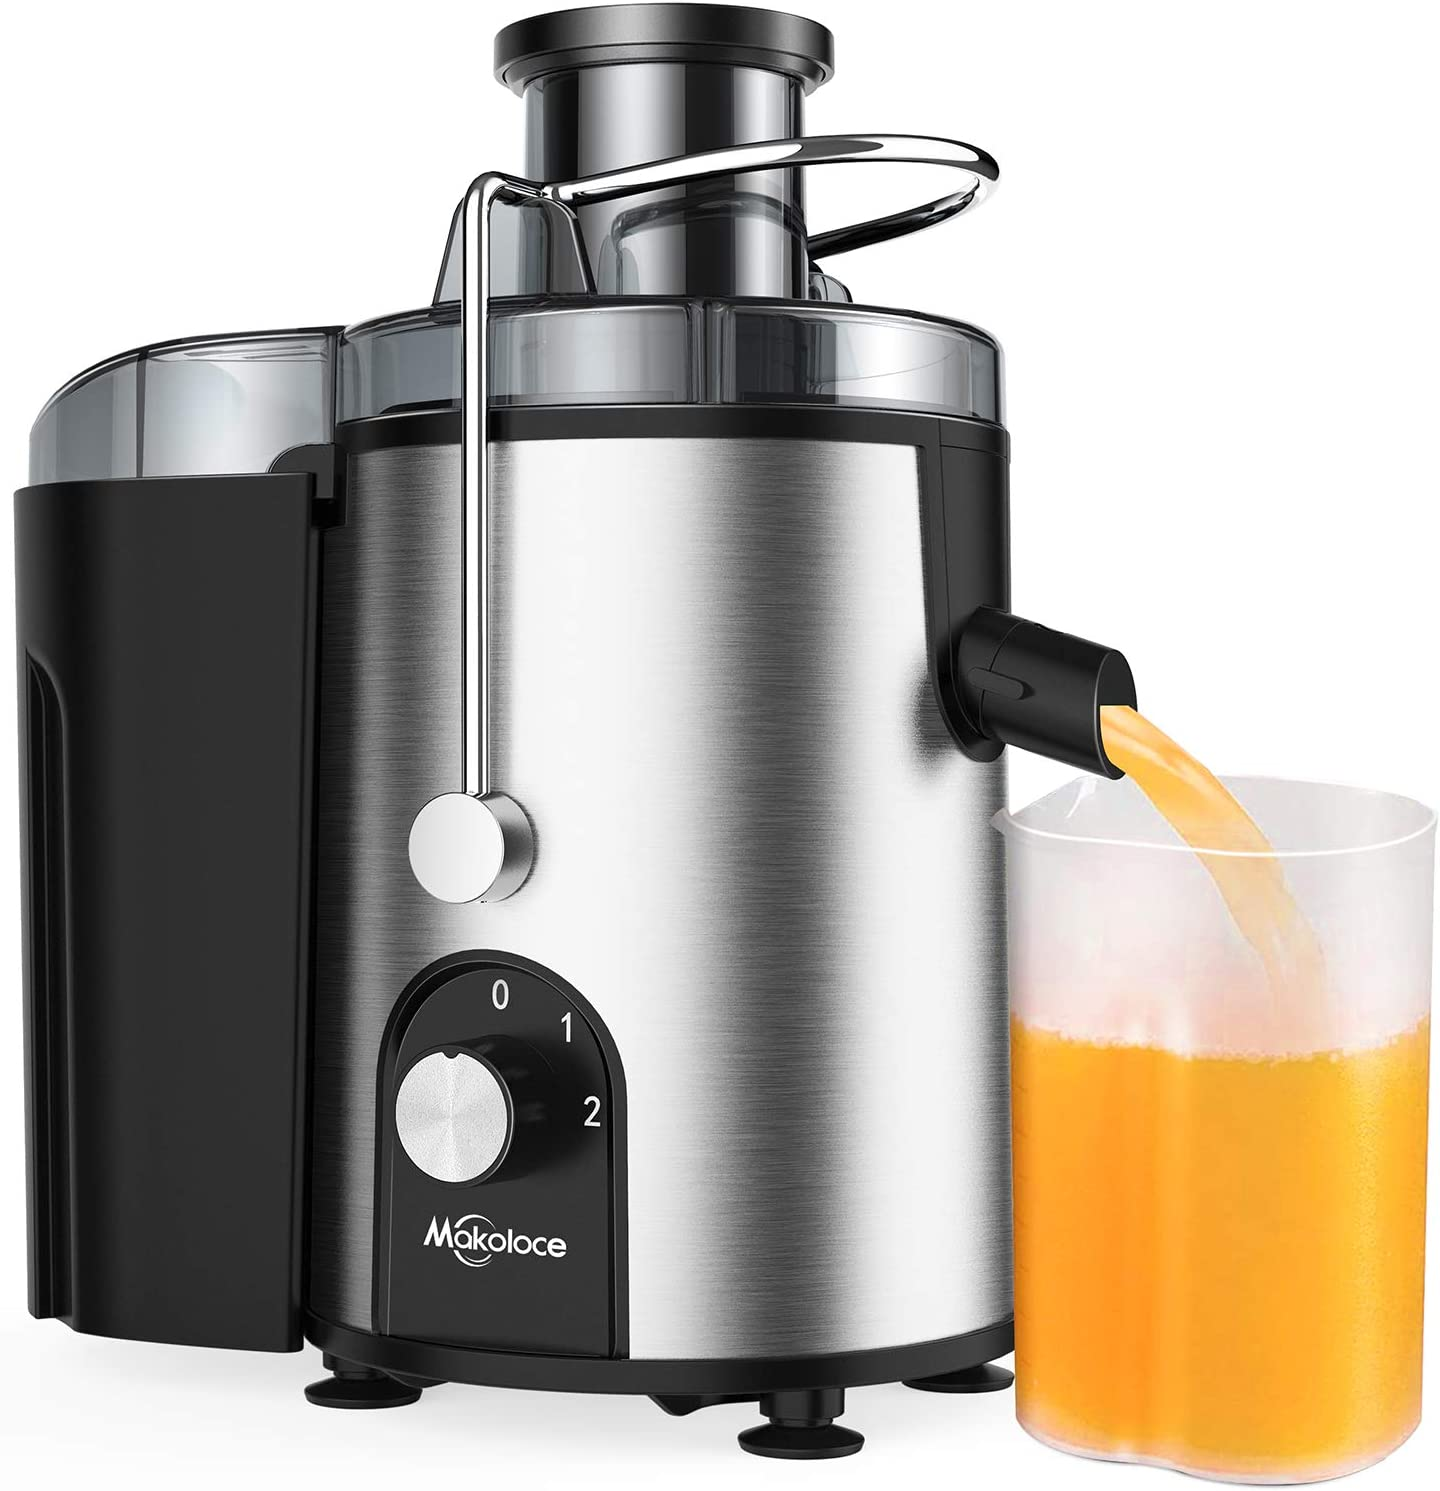 Juicer Machines, Juicers Best Sellers Easy to Clean, Centrifugal Juicers Machine Vegetable and Fruit Juice Extractor, Small Electric Juicer, Juice Press Maker with 2.4